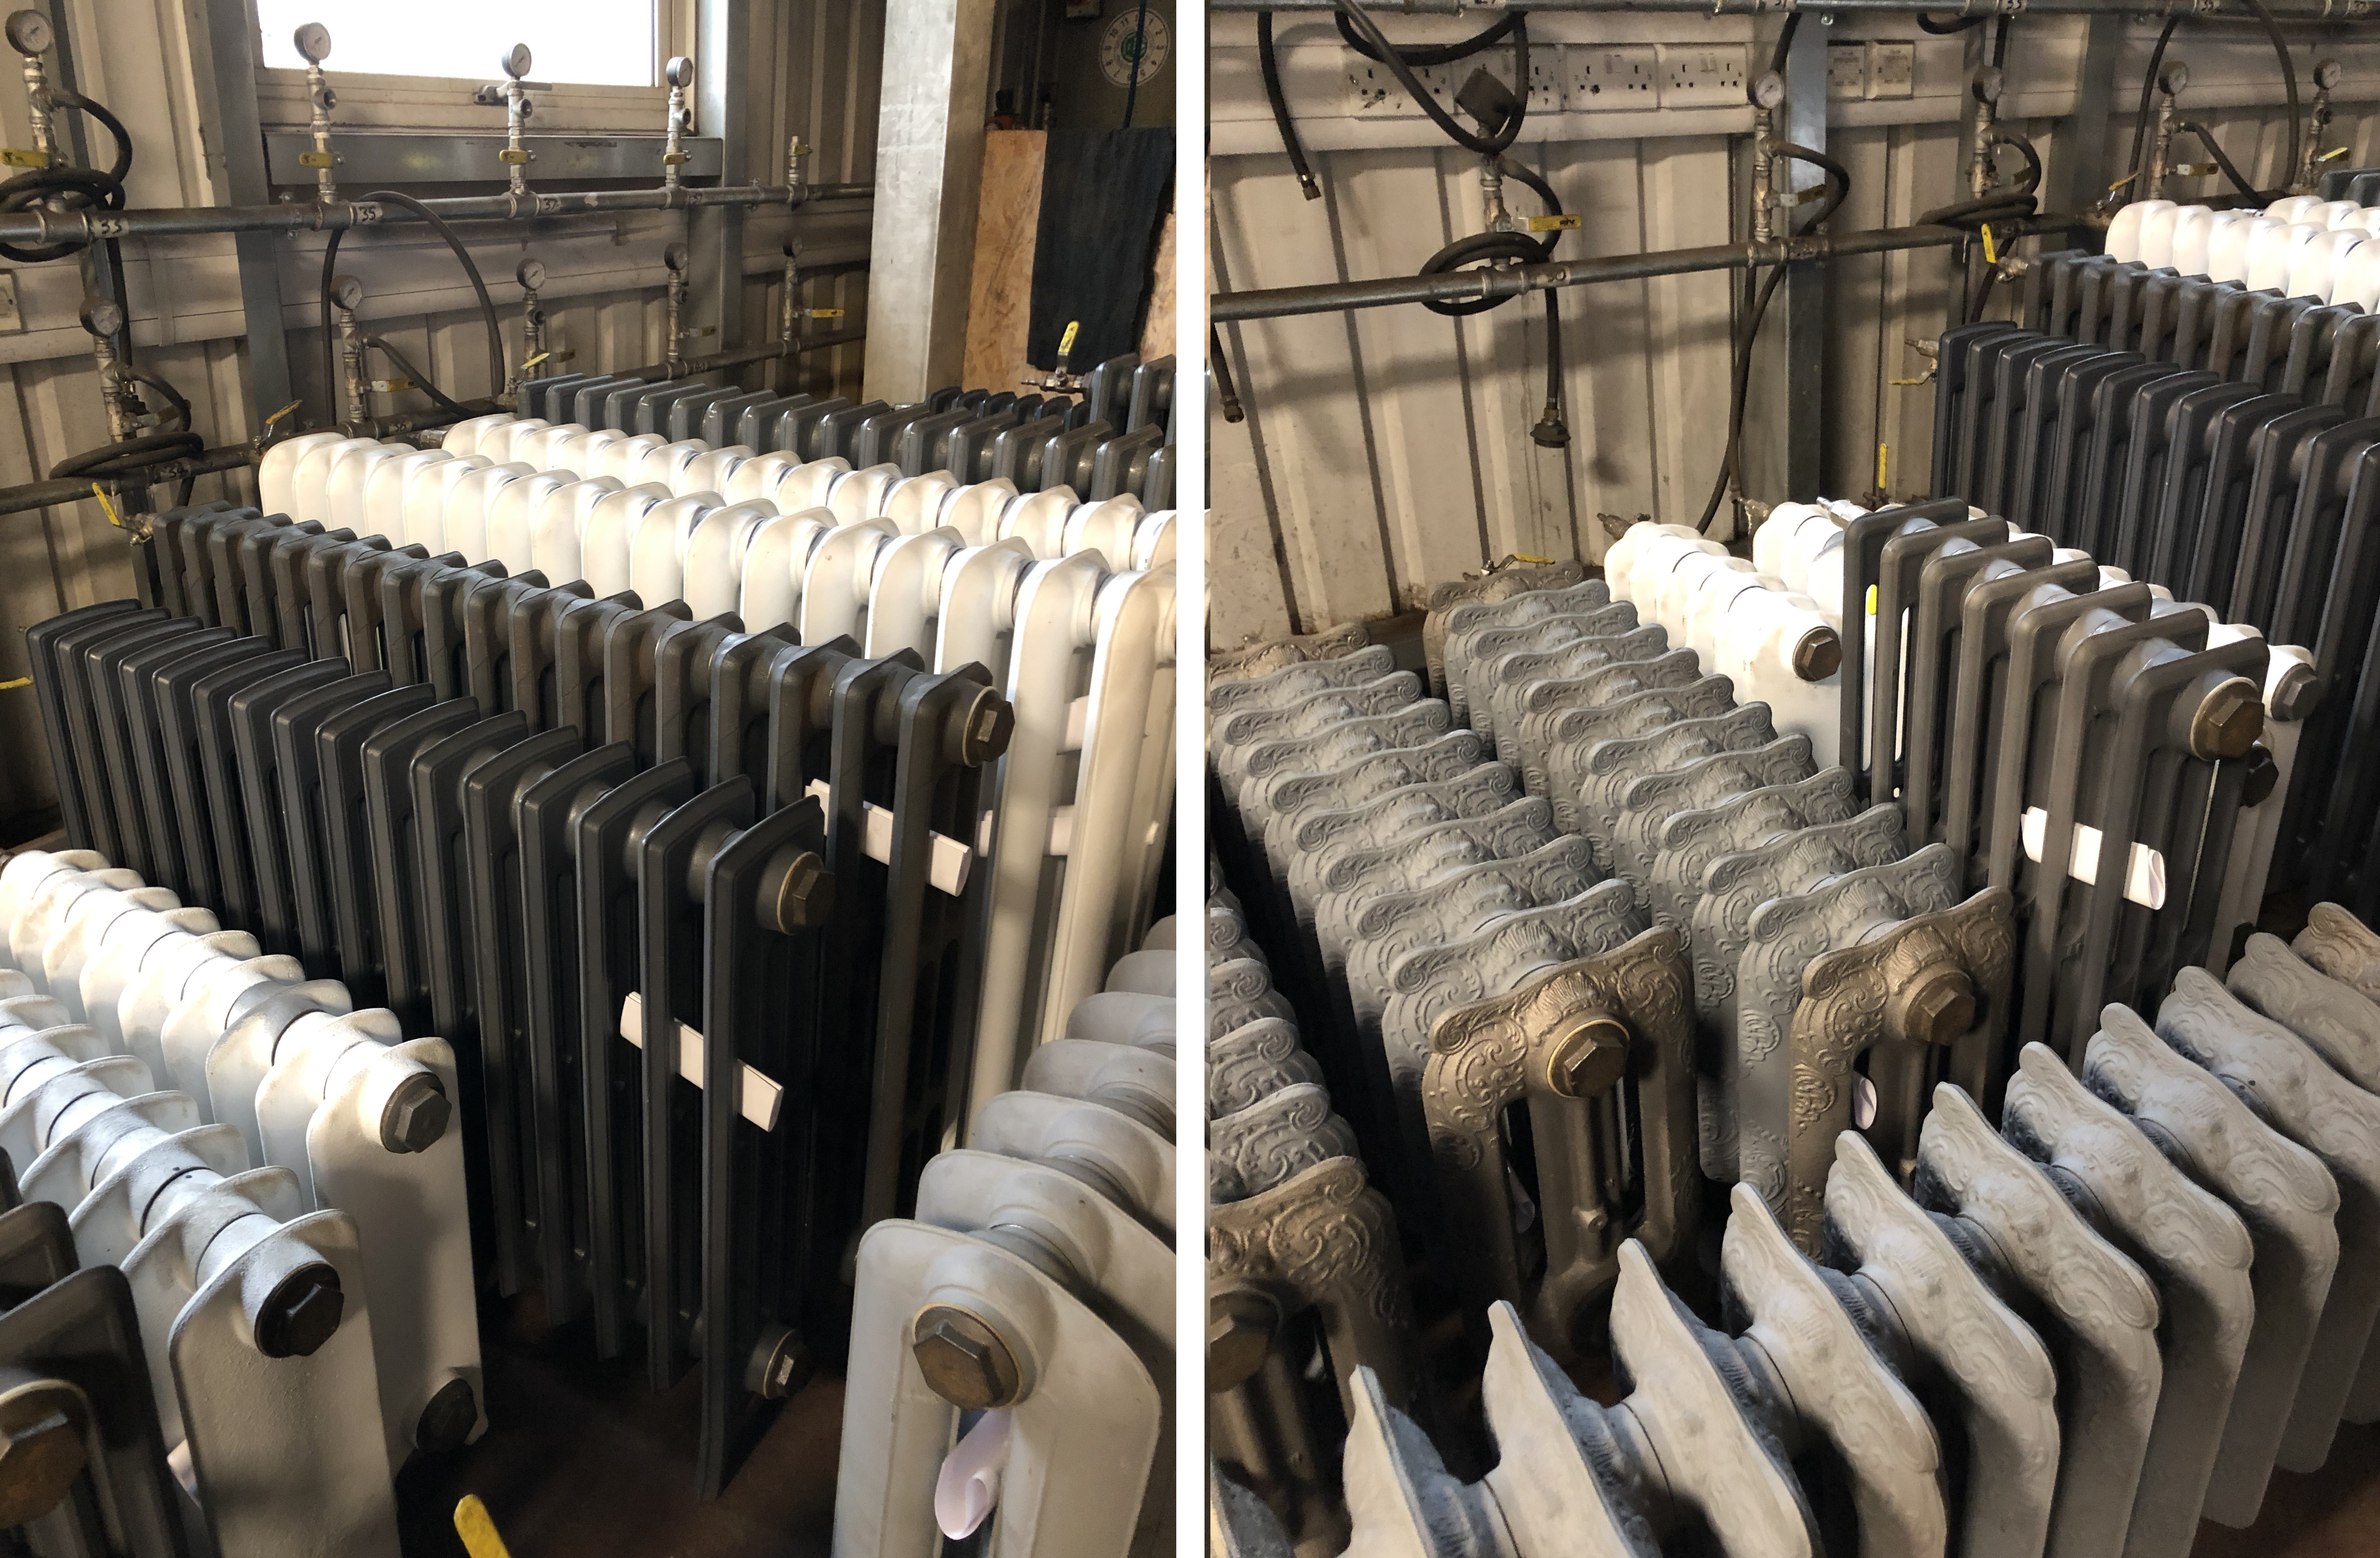 Carron Cast Iron Radiators Being Made In The Factory